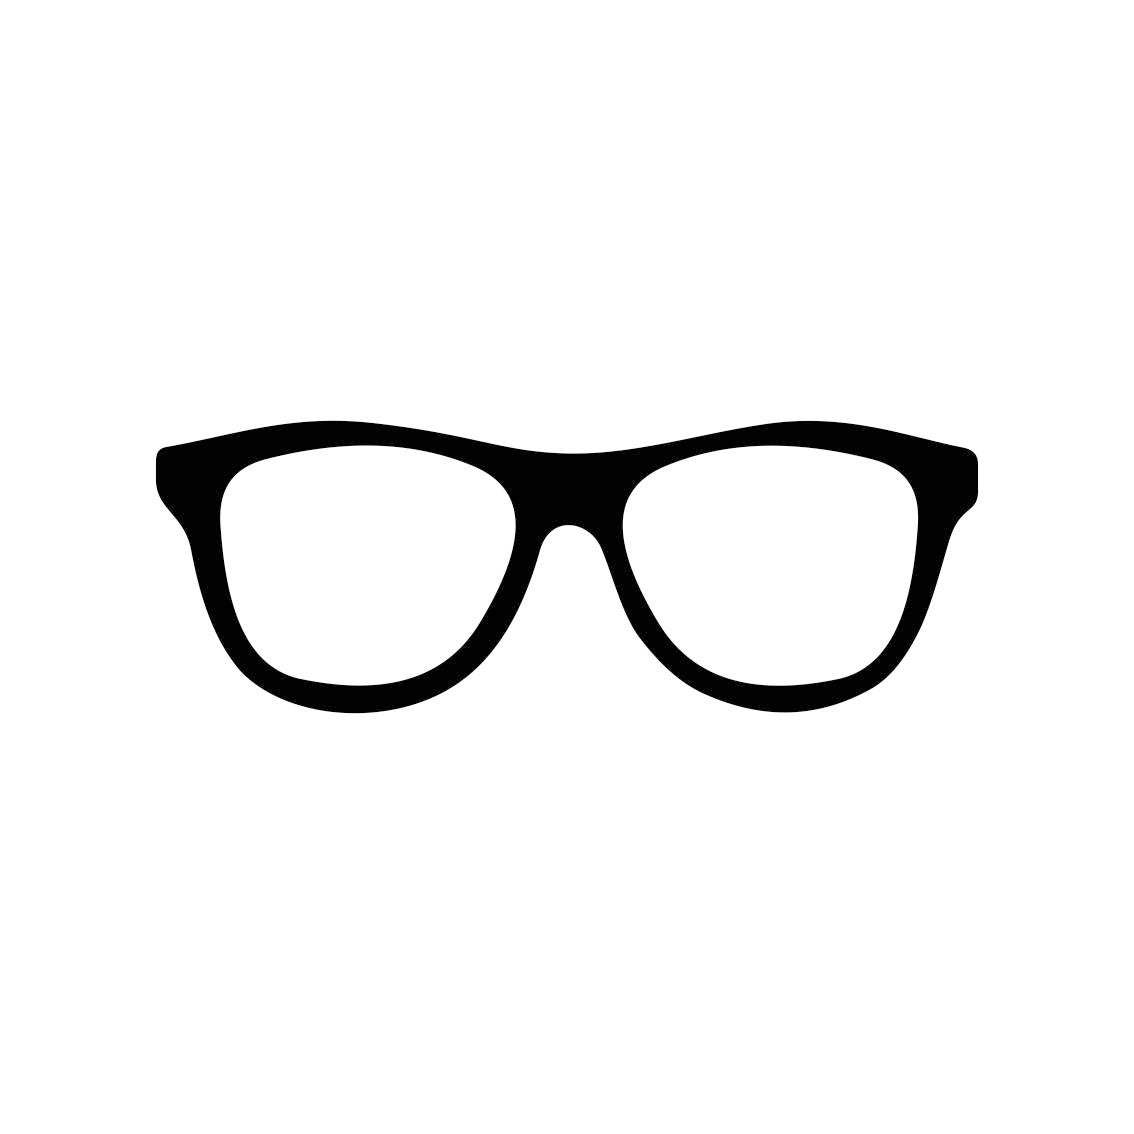 Hipster Glasses Graphics Svg Dxf Eps Png Cdr Ai Pdf Vector Art Etsy